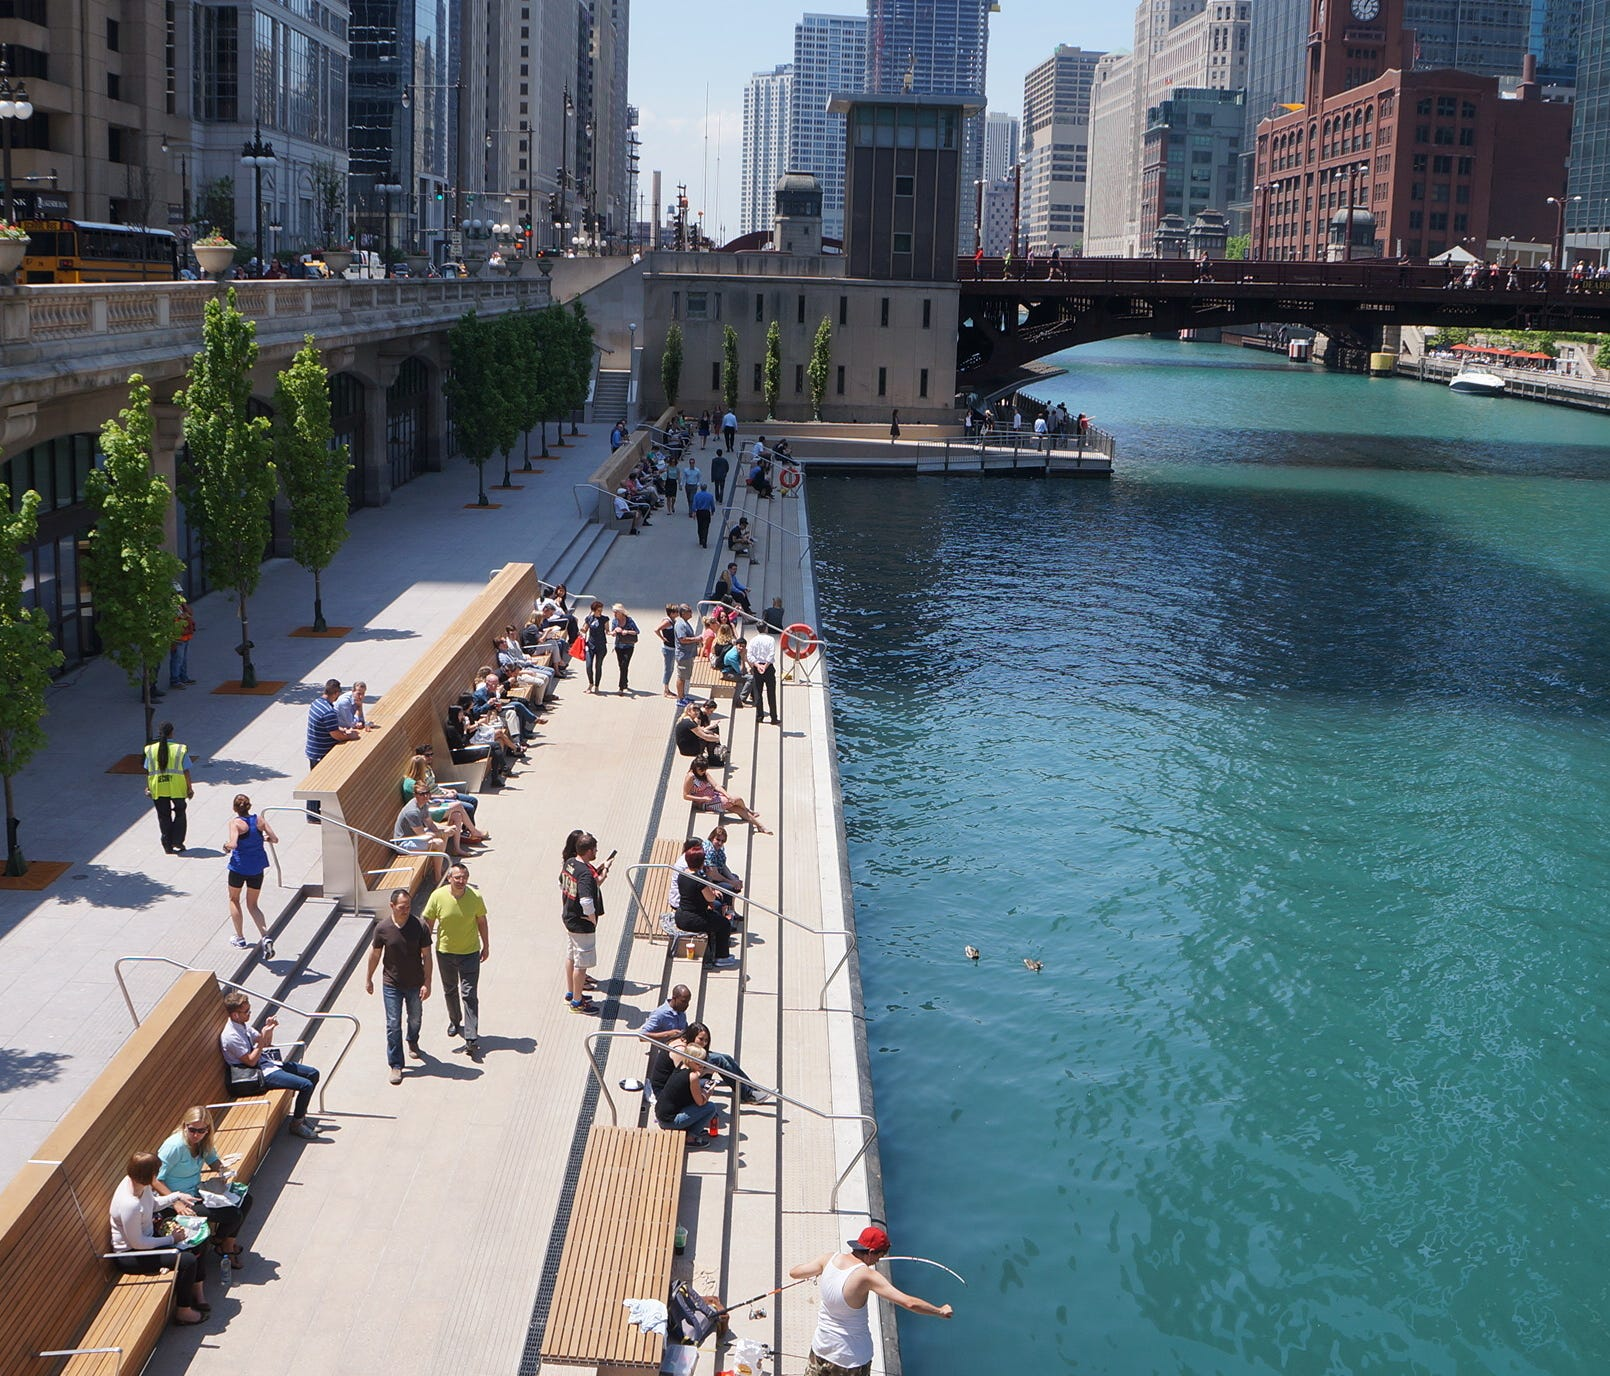 The Chicago Riverwalk was extended late last year.